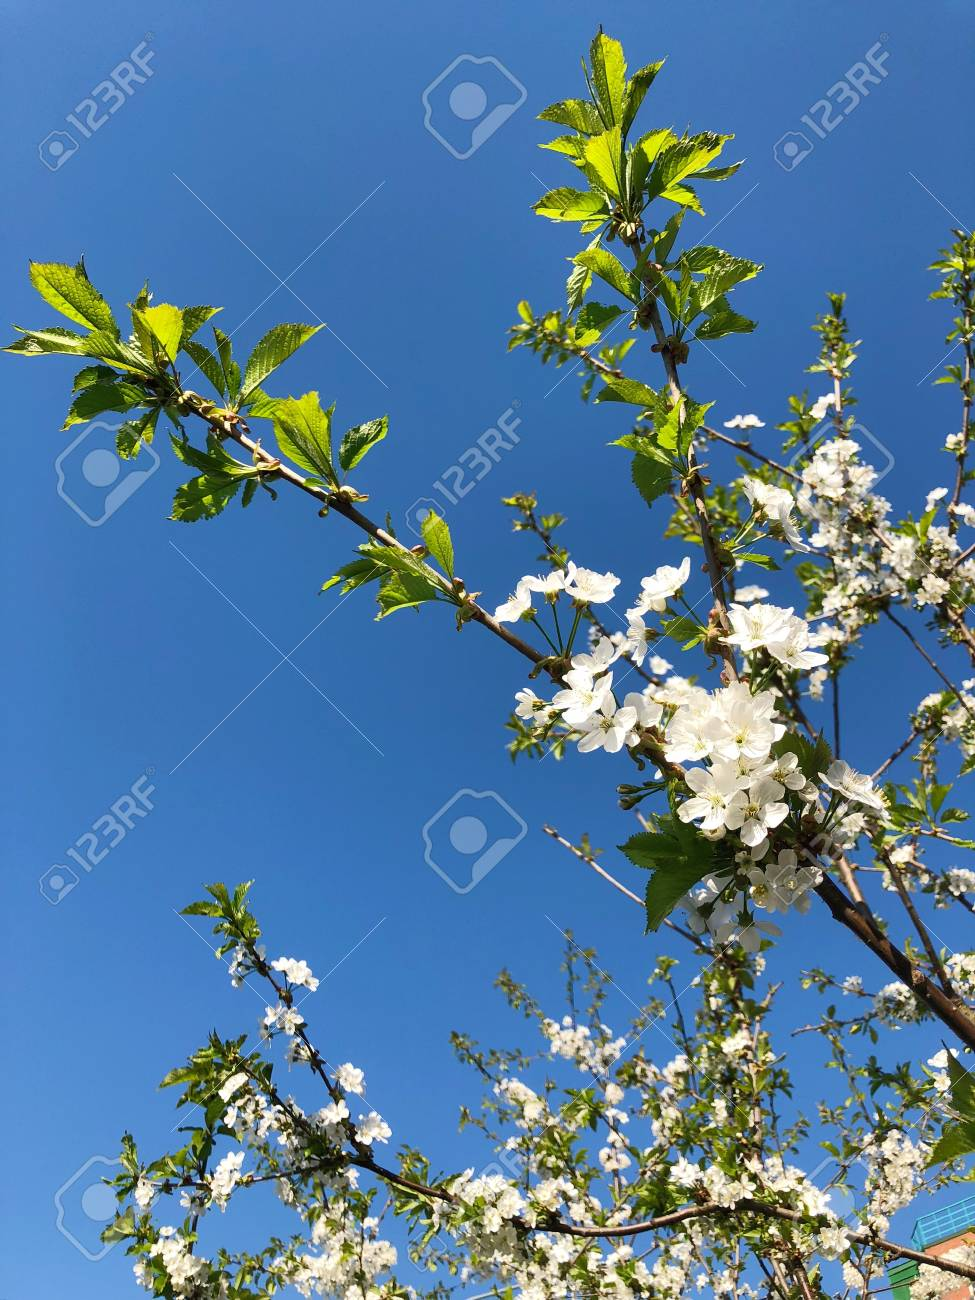 Beautiful summer tree with small white flowers stock photo picture beautiful summer tree with small white flowers stock photo 101761053 mightylinksfo